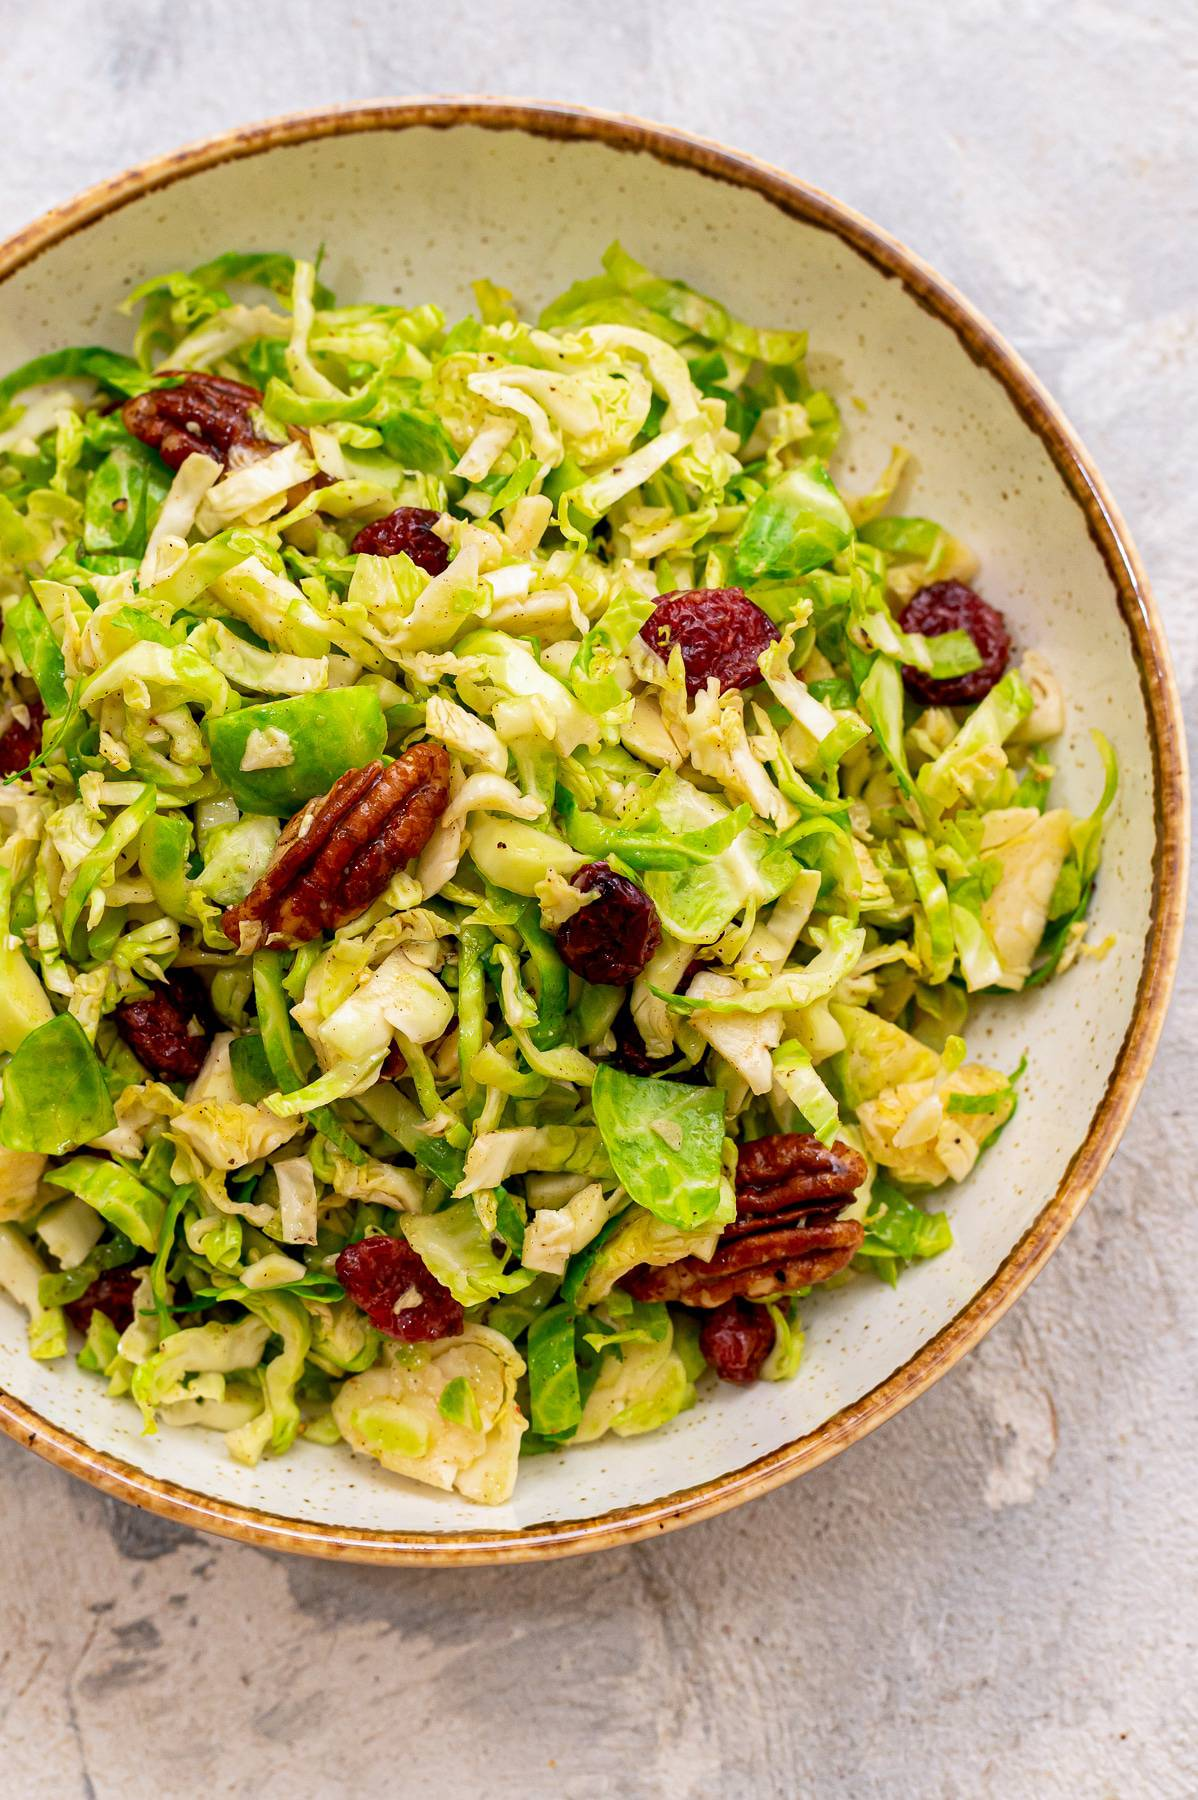 Brussels sprout slaw in a bowl with cranberries and pecans.